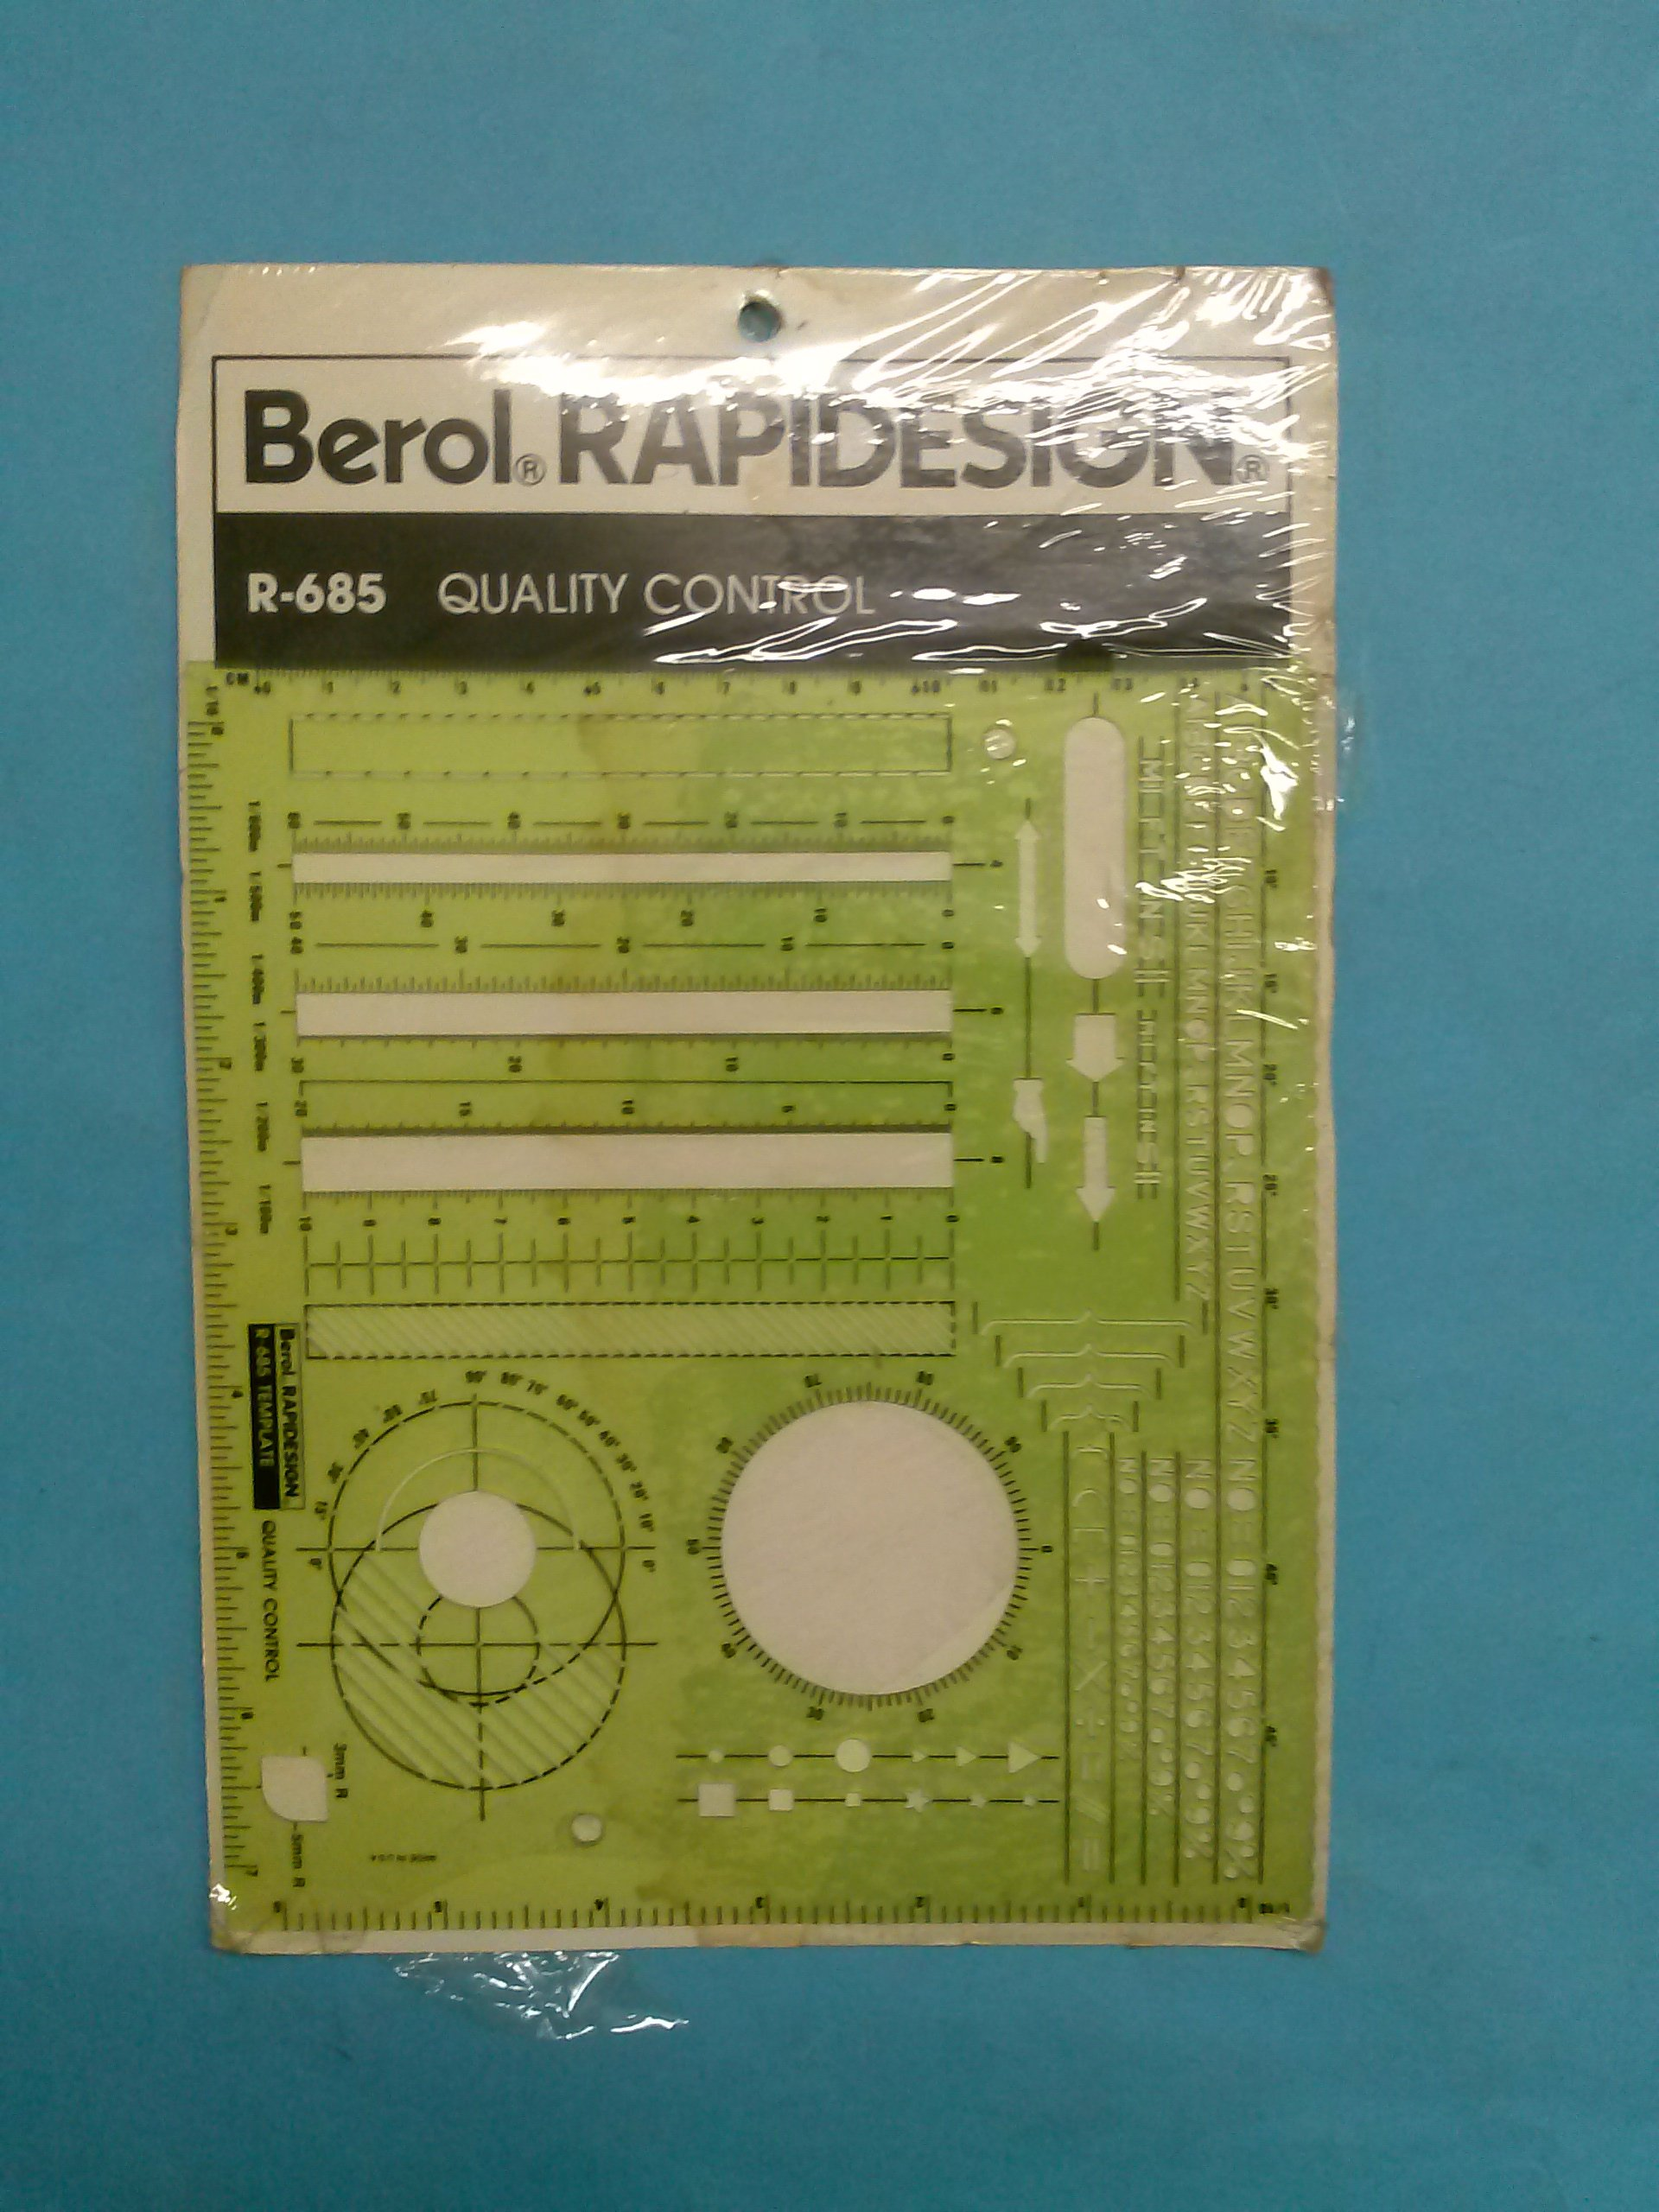 Berol R-685 RapiDesign Technical Drawing Template Quality Control (Virgin Vintage Product) by Berol (Image #1)